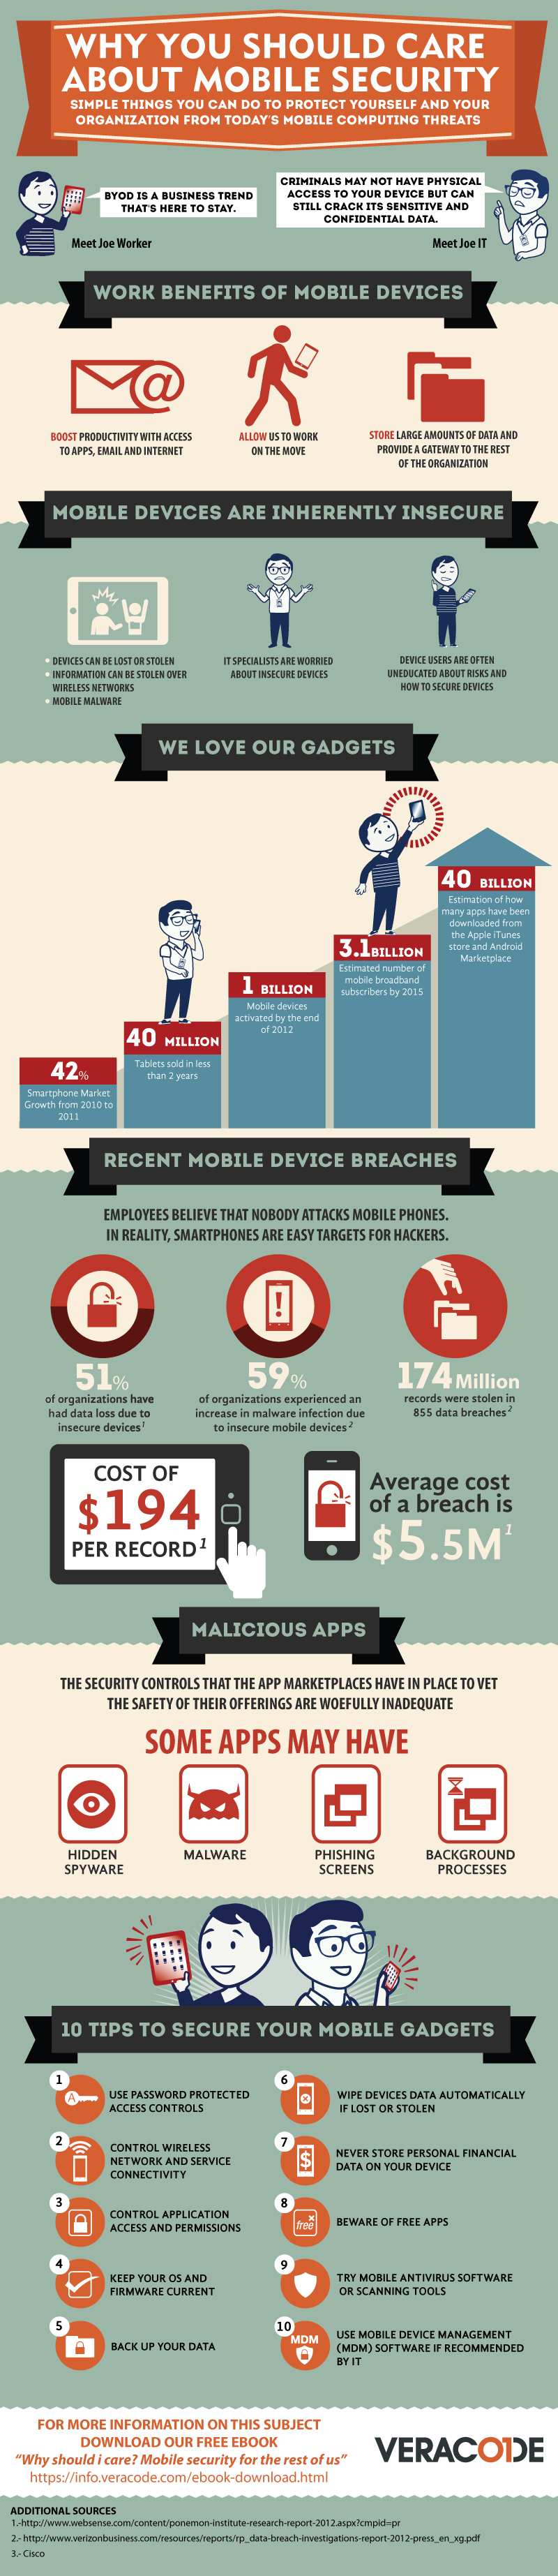 byod-veracode-infographic